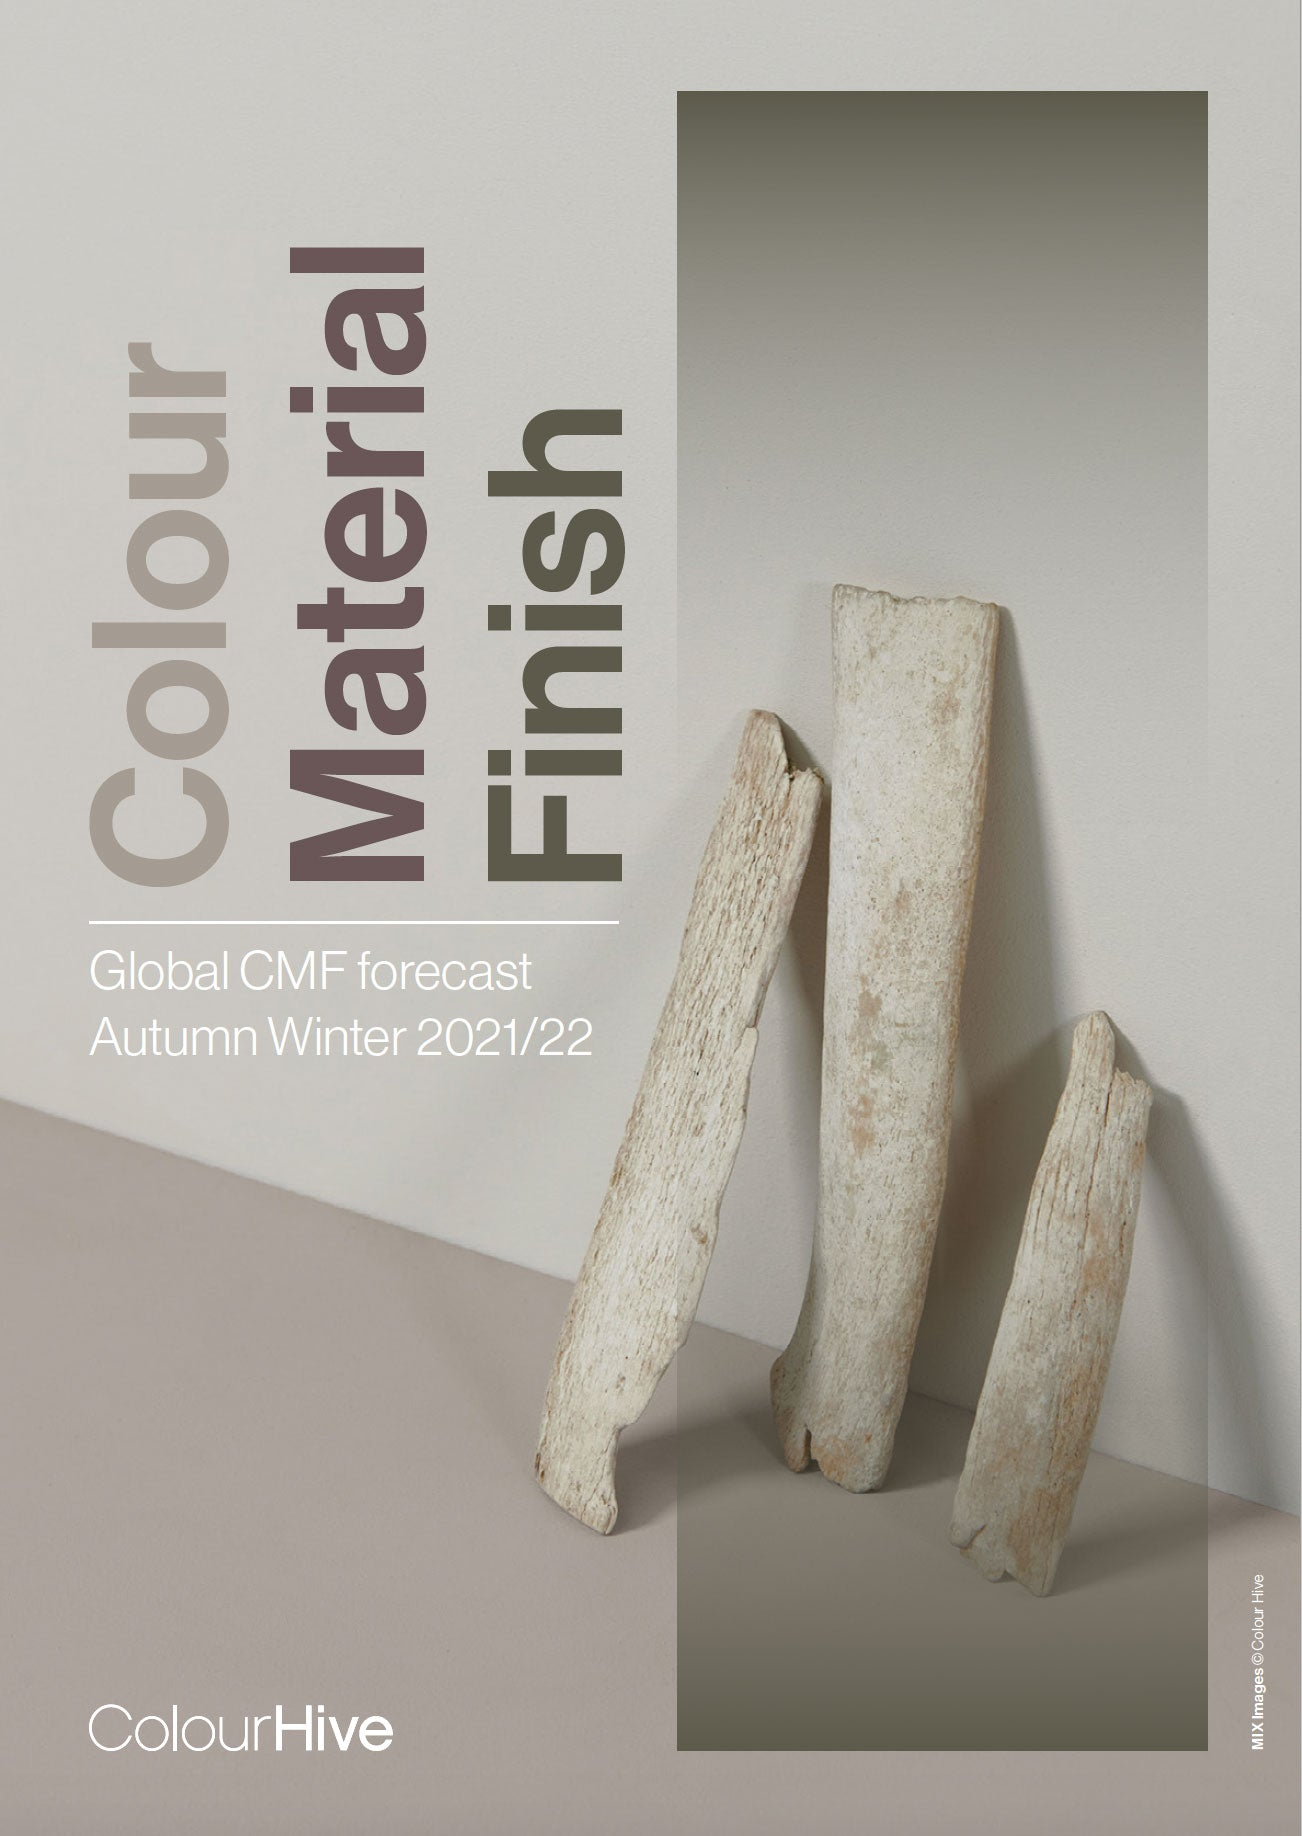 'Disorder in Stasis' featured in the Colour Hive Trend report Autumn Winter 2021/2022